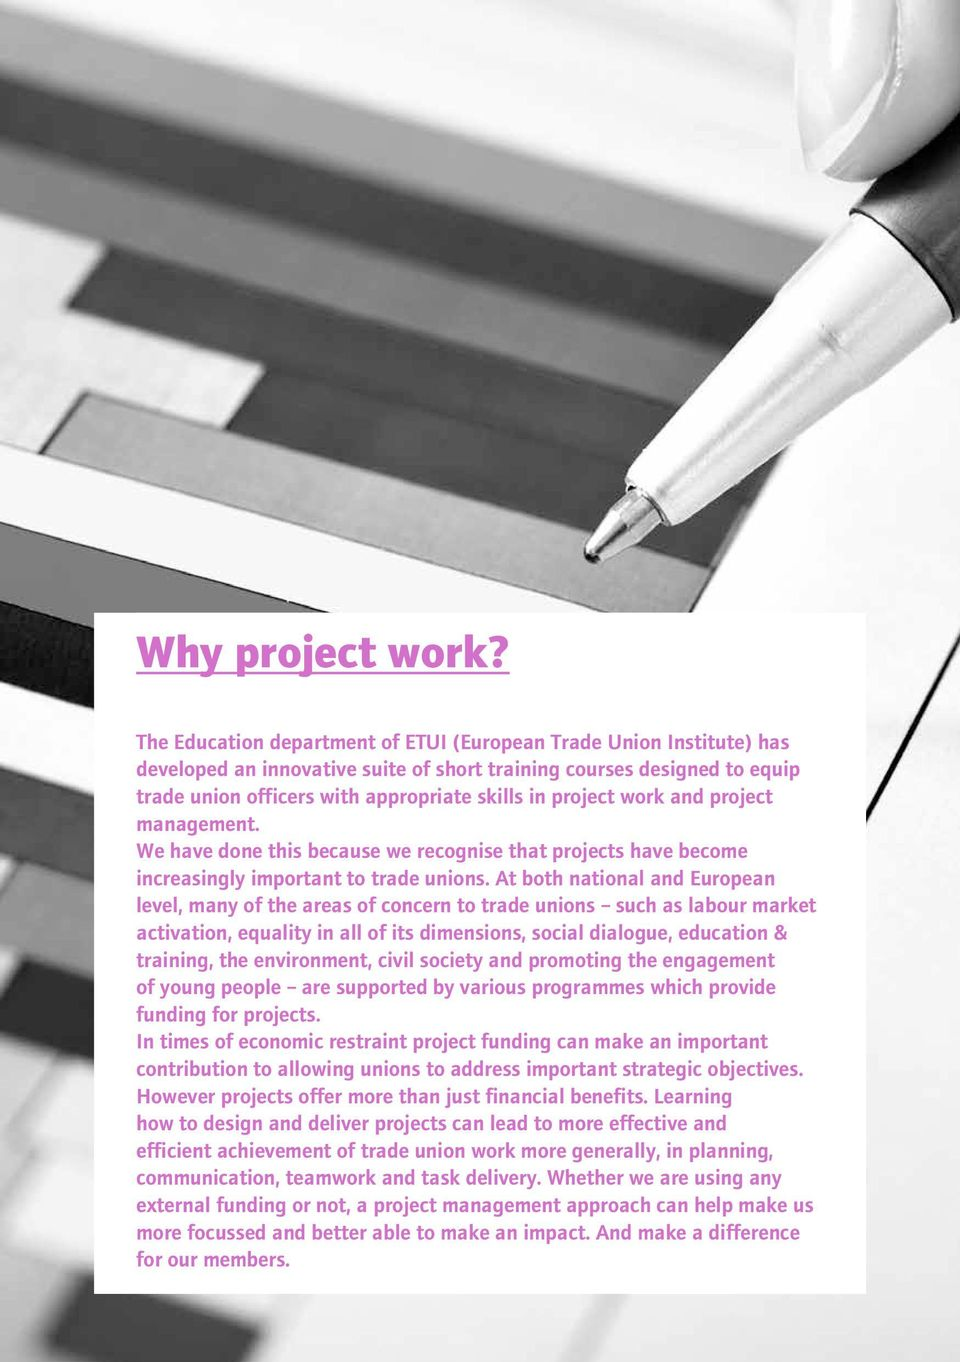 work and project management. We have done this because we recognise that projects have become increasingly important to trade unions.